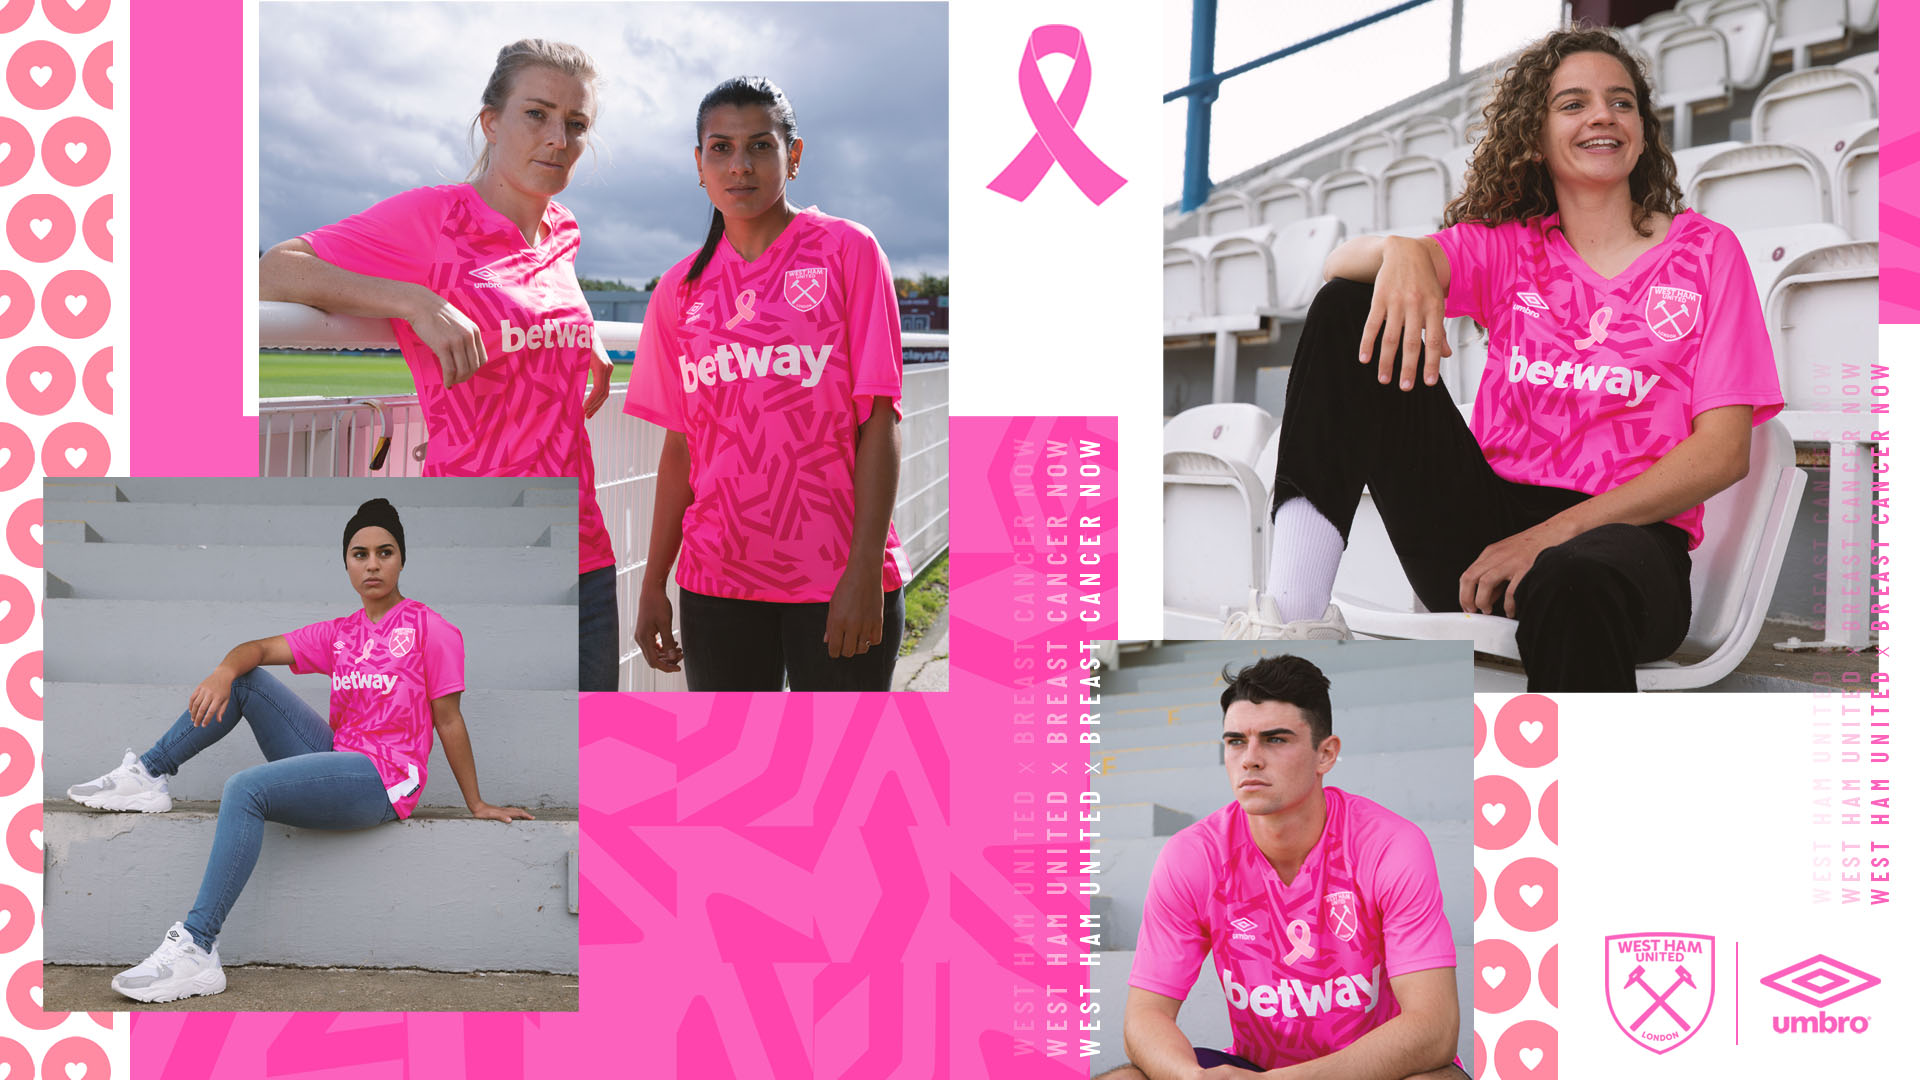 Camisa Outubro Rosa Do West Ham Feminino 2019 2020 Umbro Mdf